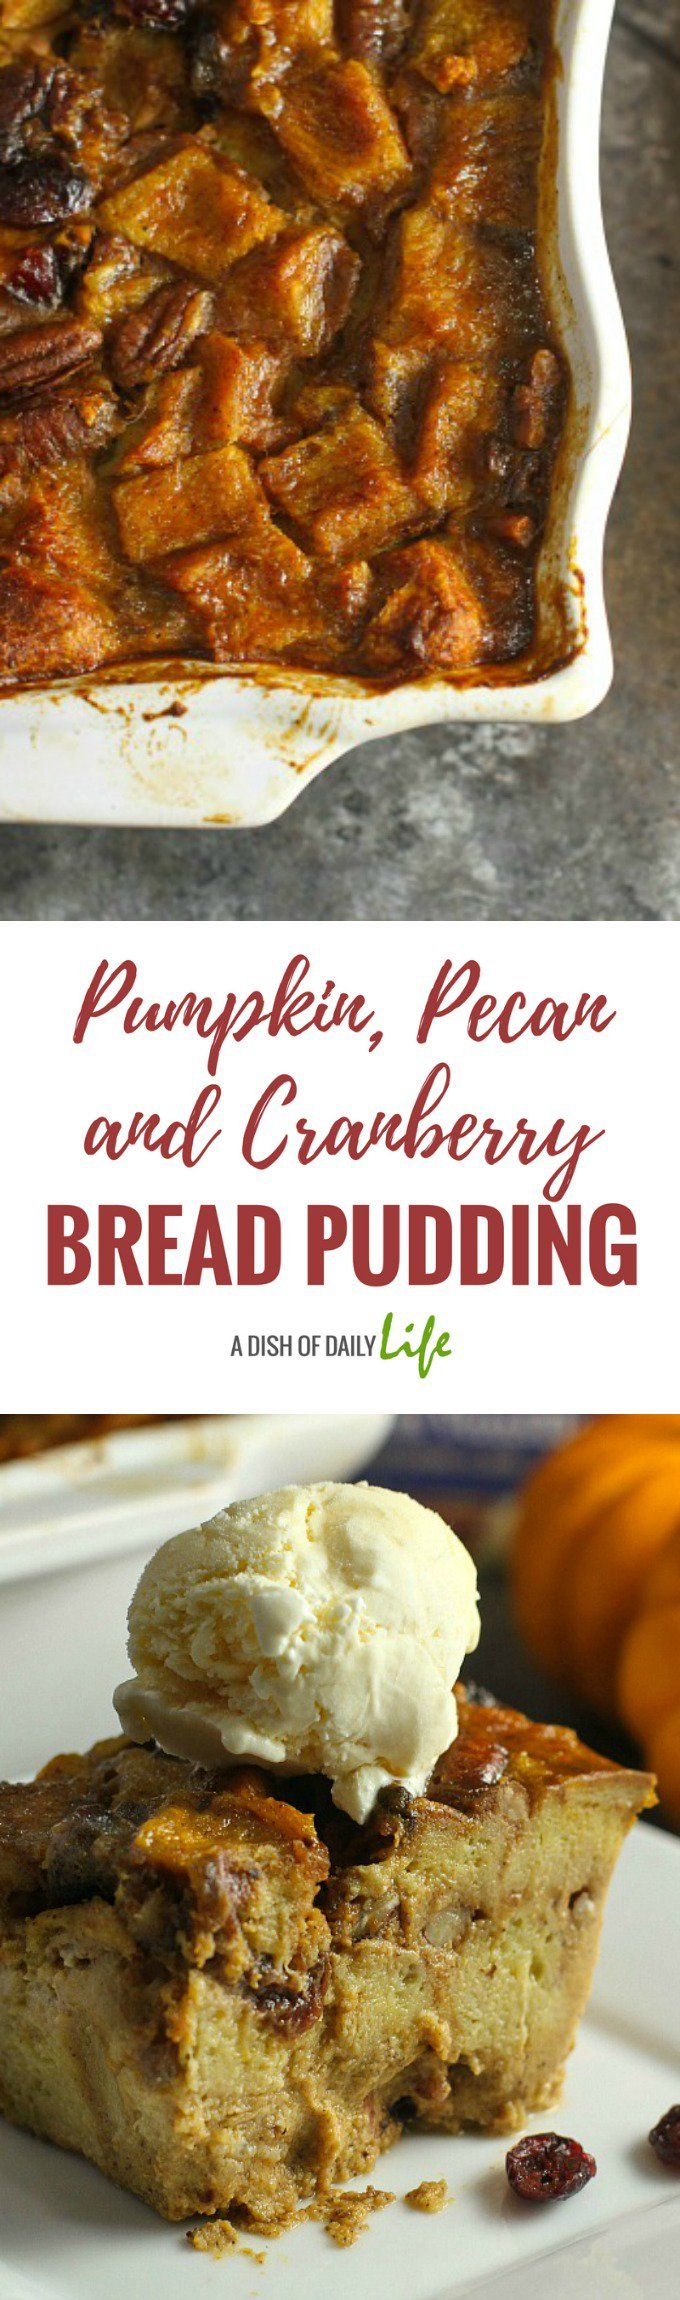 Pumpkin, Pecan and Cranberry Bread Pudding...this fun and festive dessert is the perfect finishing touch to this elegant dinner party menu for the holidays! #dessert #breadpudding #pumpkin #cranberries #falldessert #ad @hphood